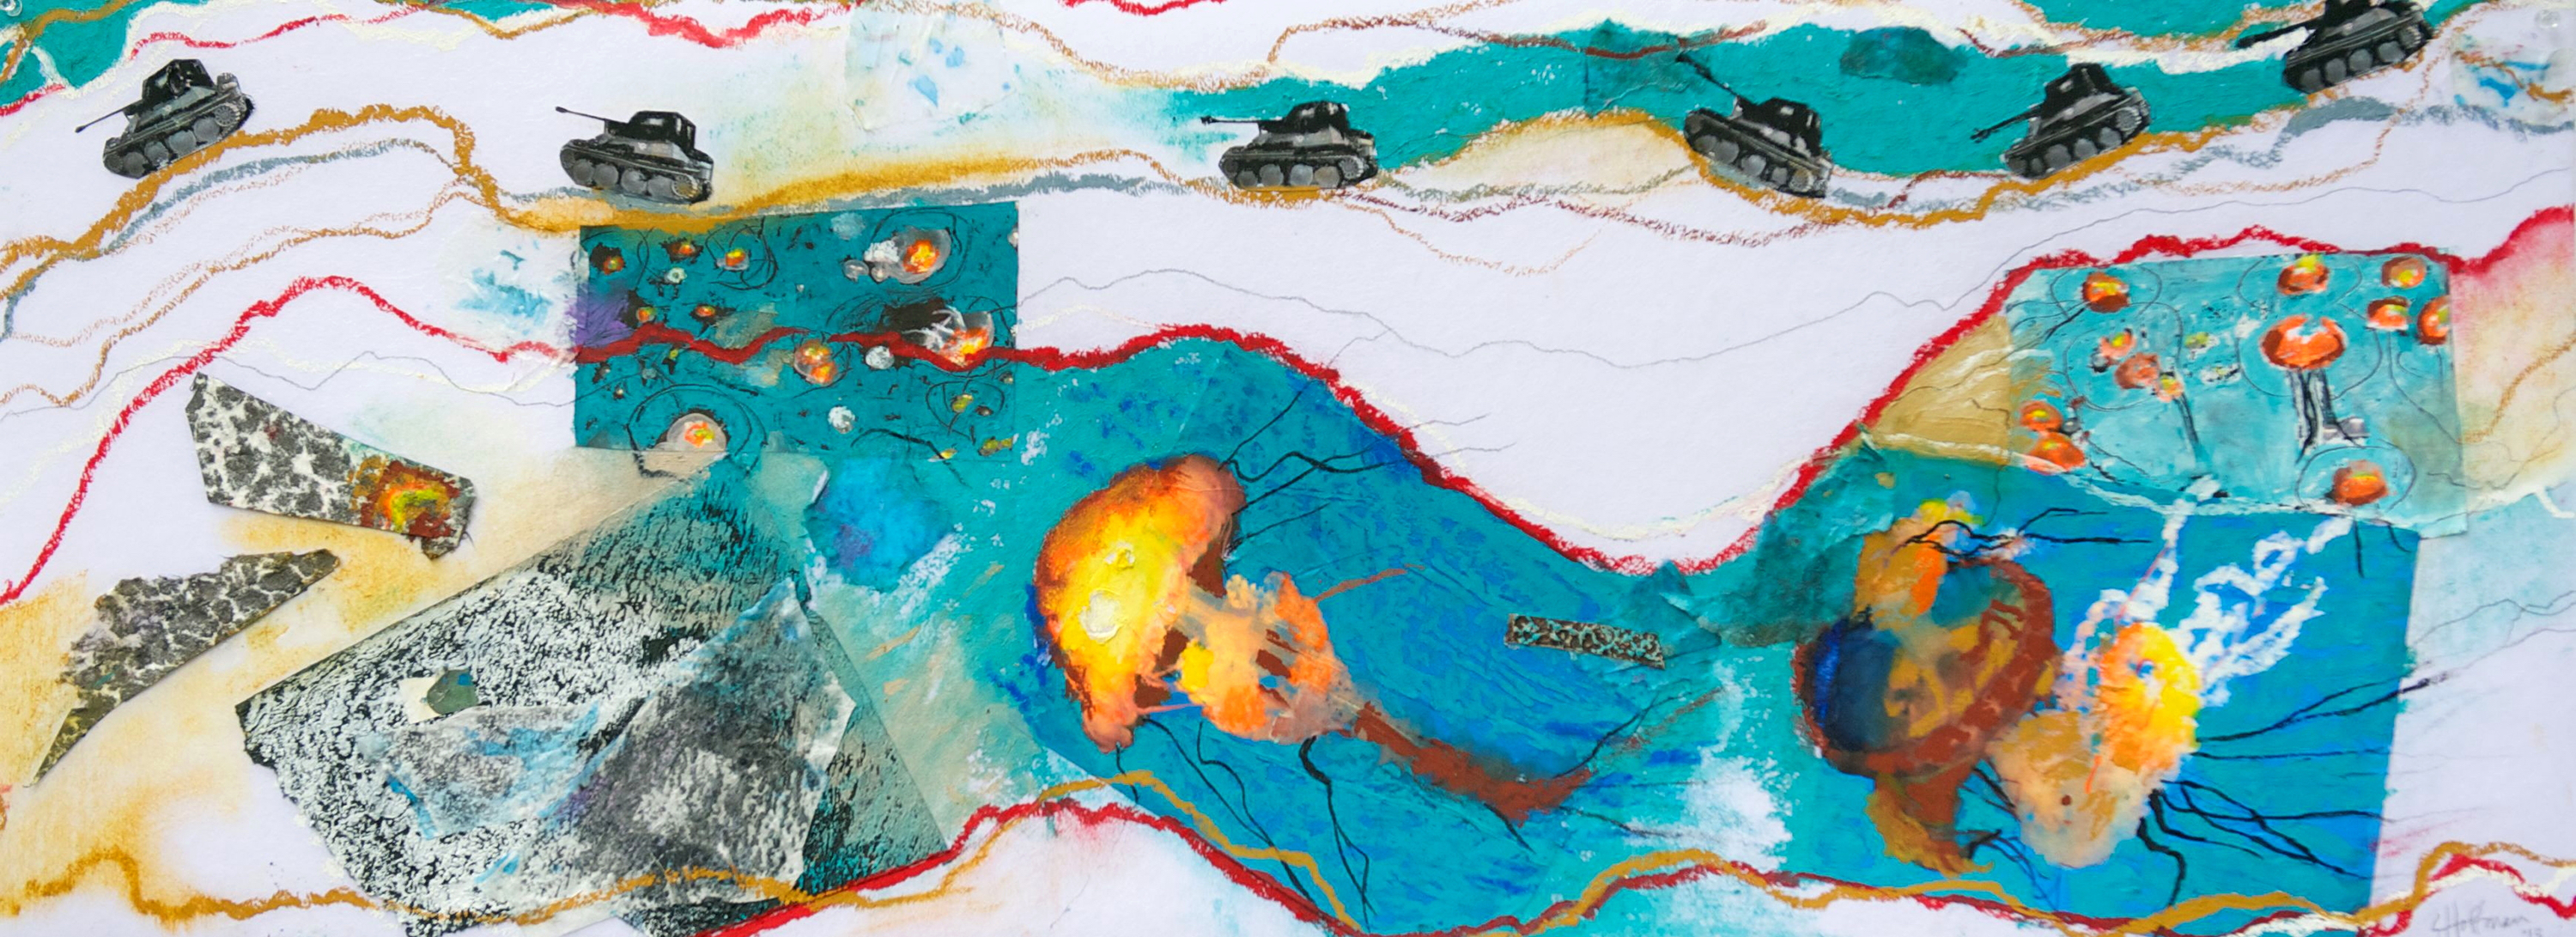 """Water Wars #2"" mixed media work by Susan Hoffman Fishman, courtesy of the artist."